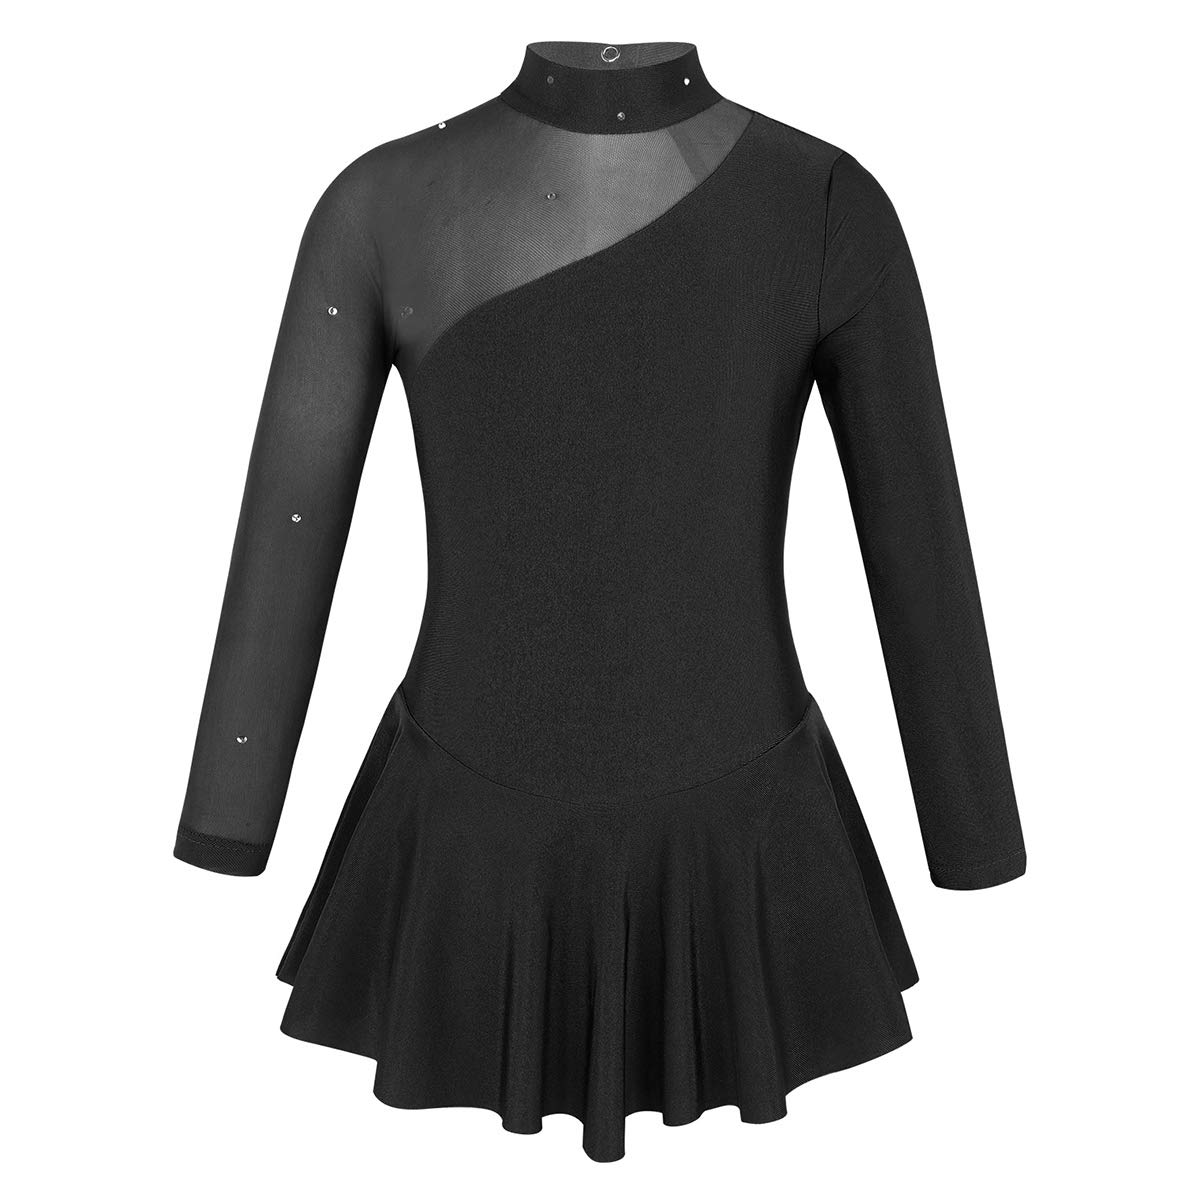 YONGHS Kids Girls Ice Roller Skating Ballet Dance Leotard Dress Long Sleeves Mesh Splice Cutout Back Unitard Dancewear Black 10 by YONGHS